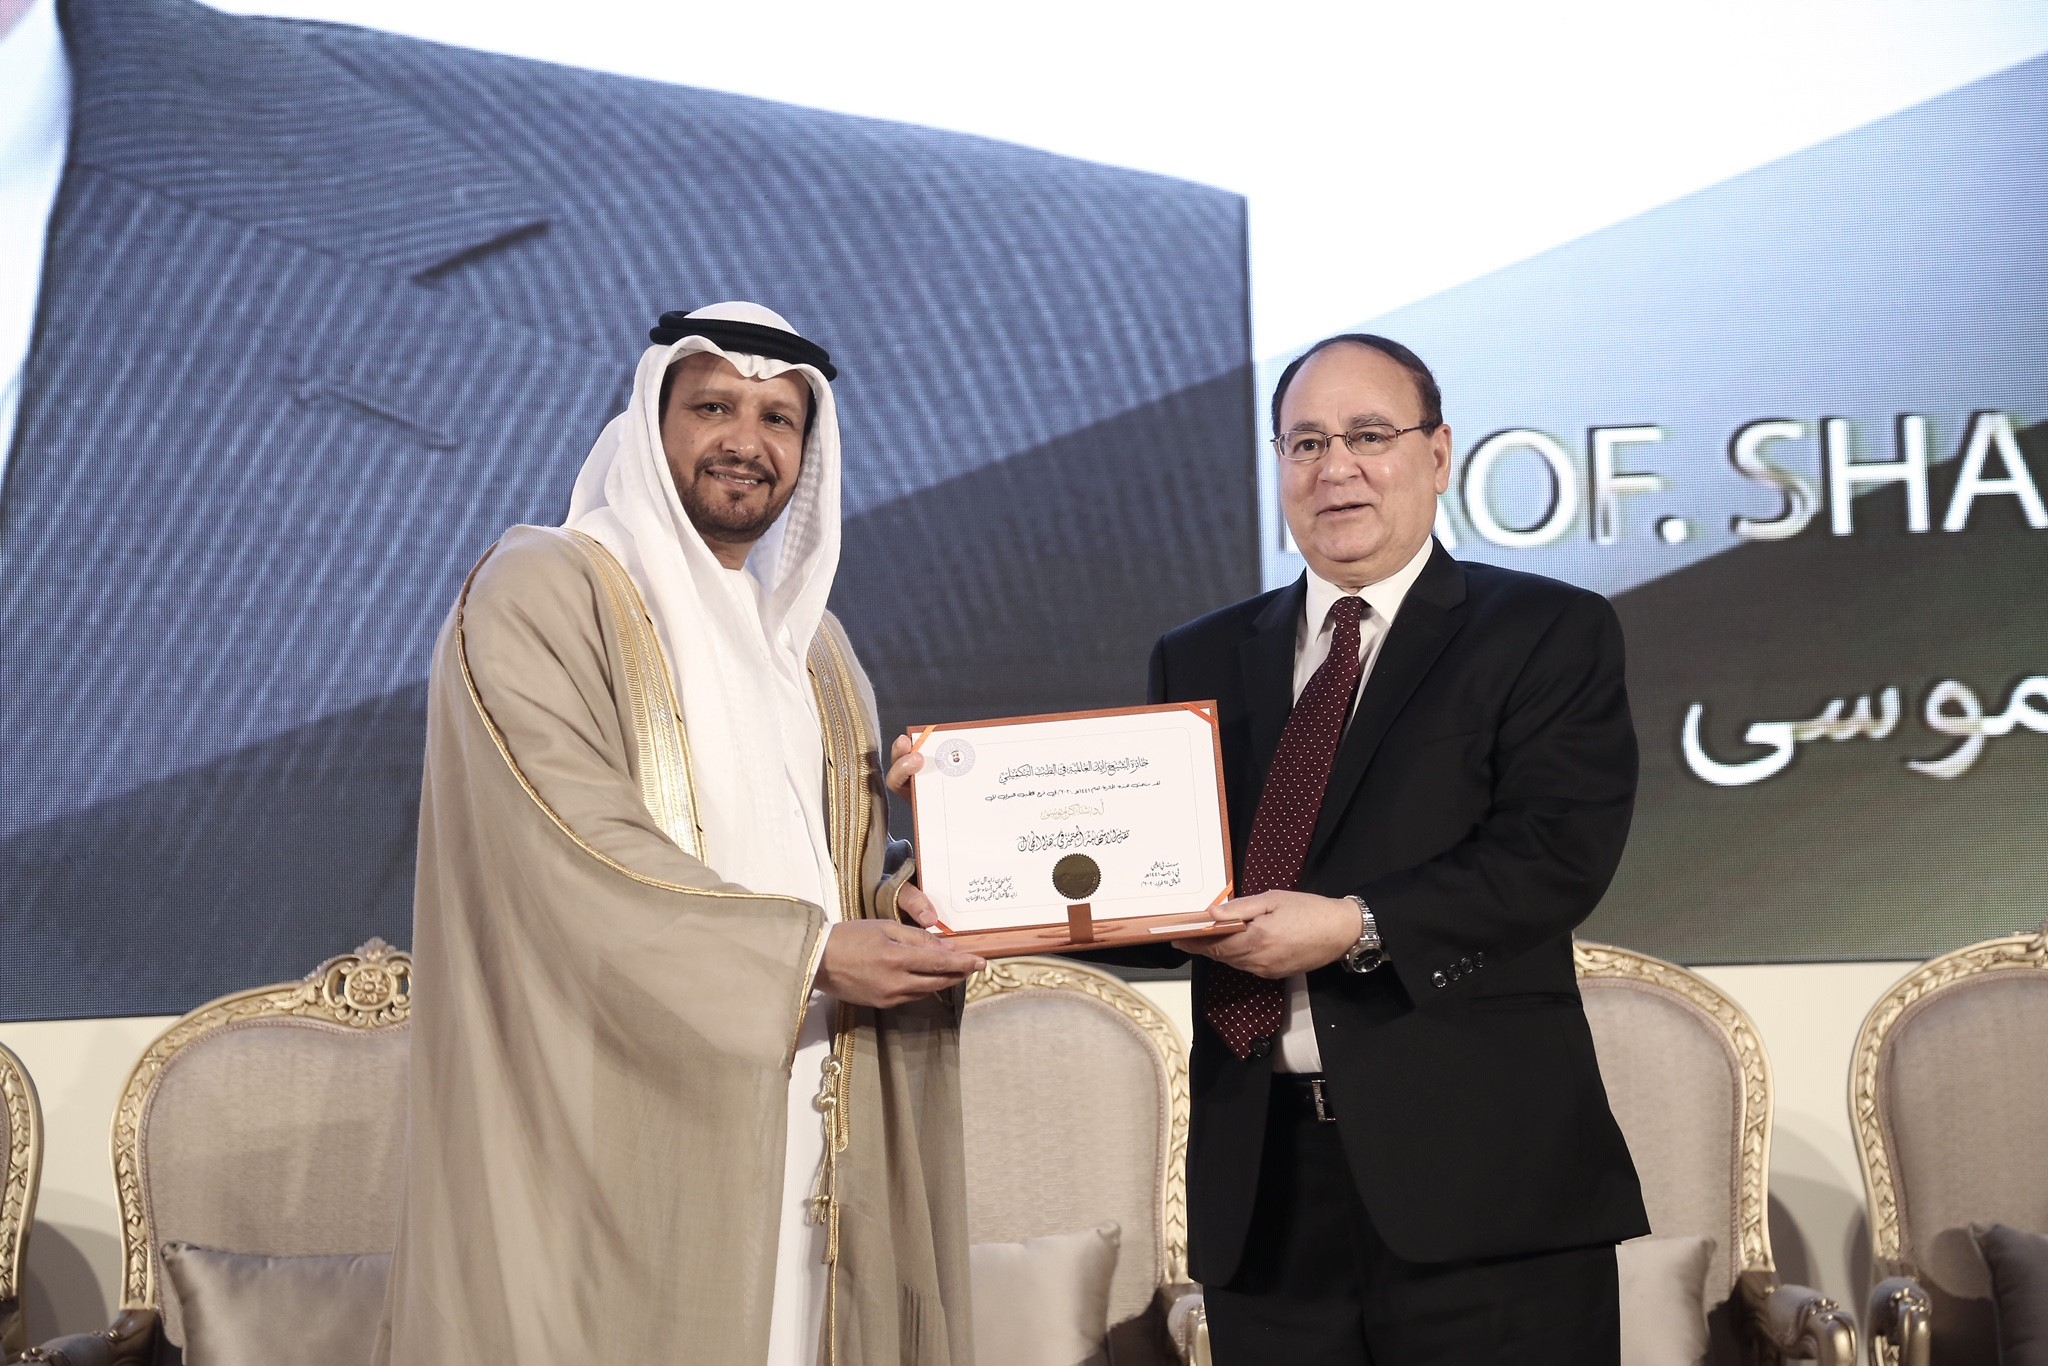 Dr. Shaker Mousa awarded first Sheikh Zayed International Award in Traditional Complementary and Alternative Medicine